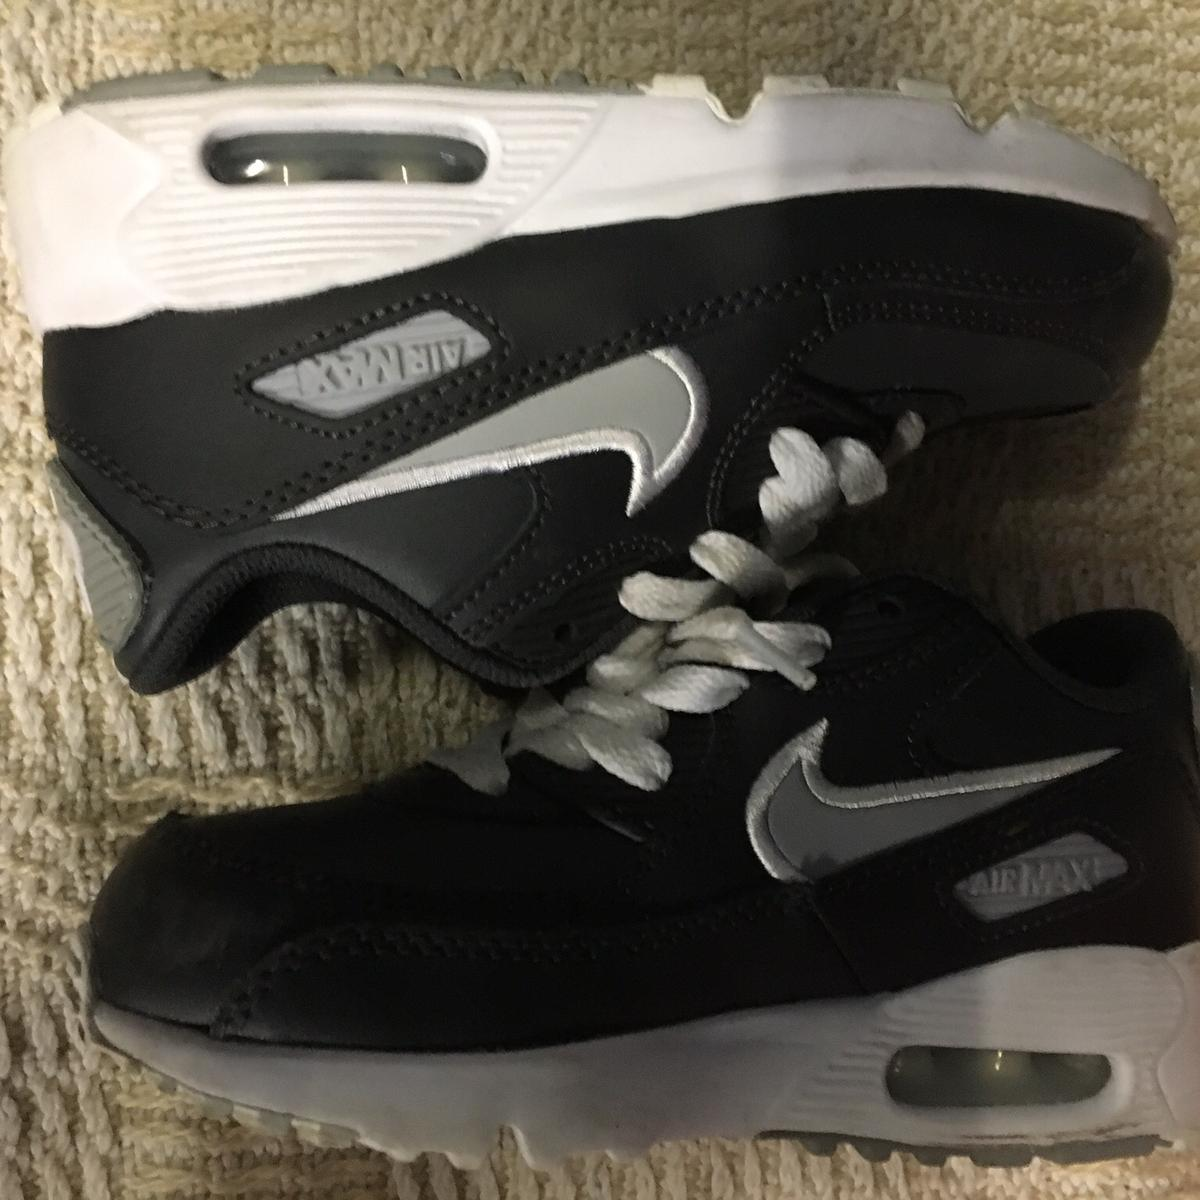 c6933203322e2 Kids Nike air max trainers uk-12 in RM11 Havering for £20.00 for sale -  Shpock